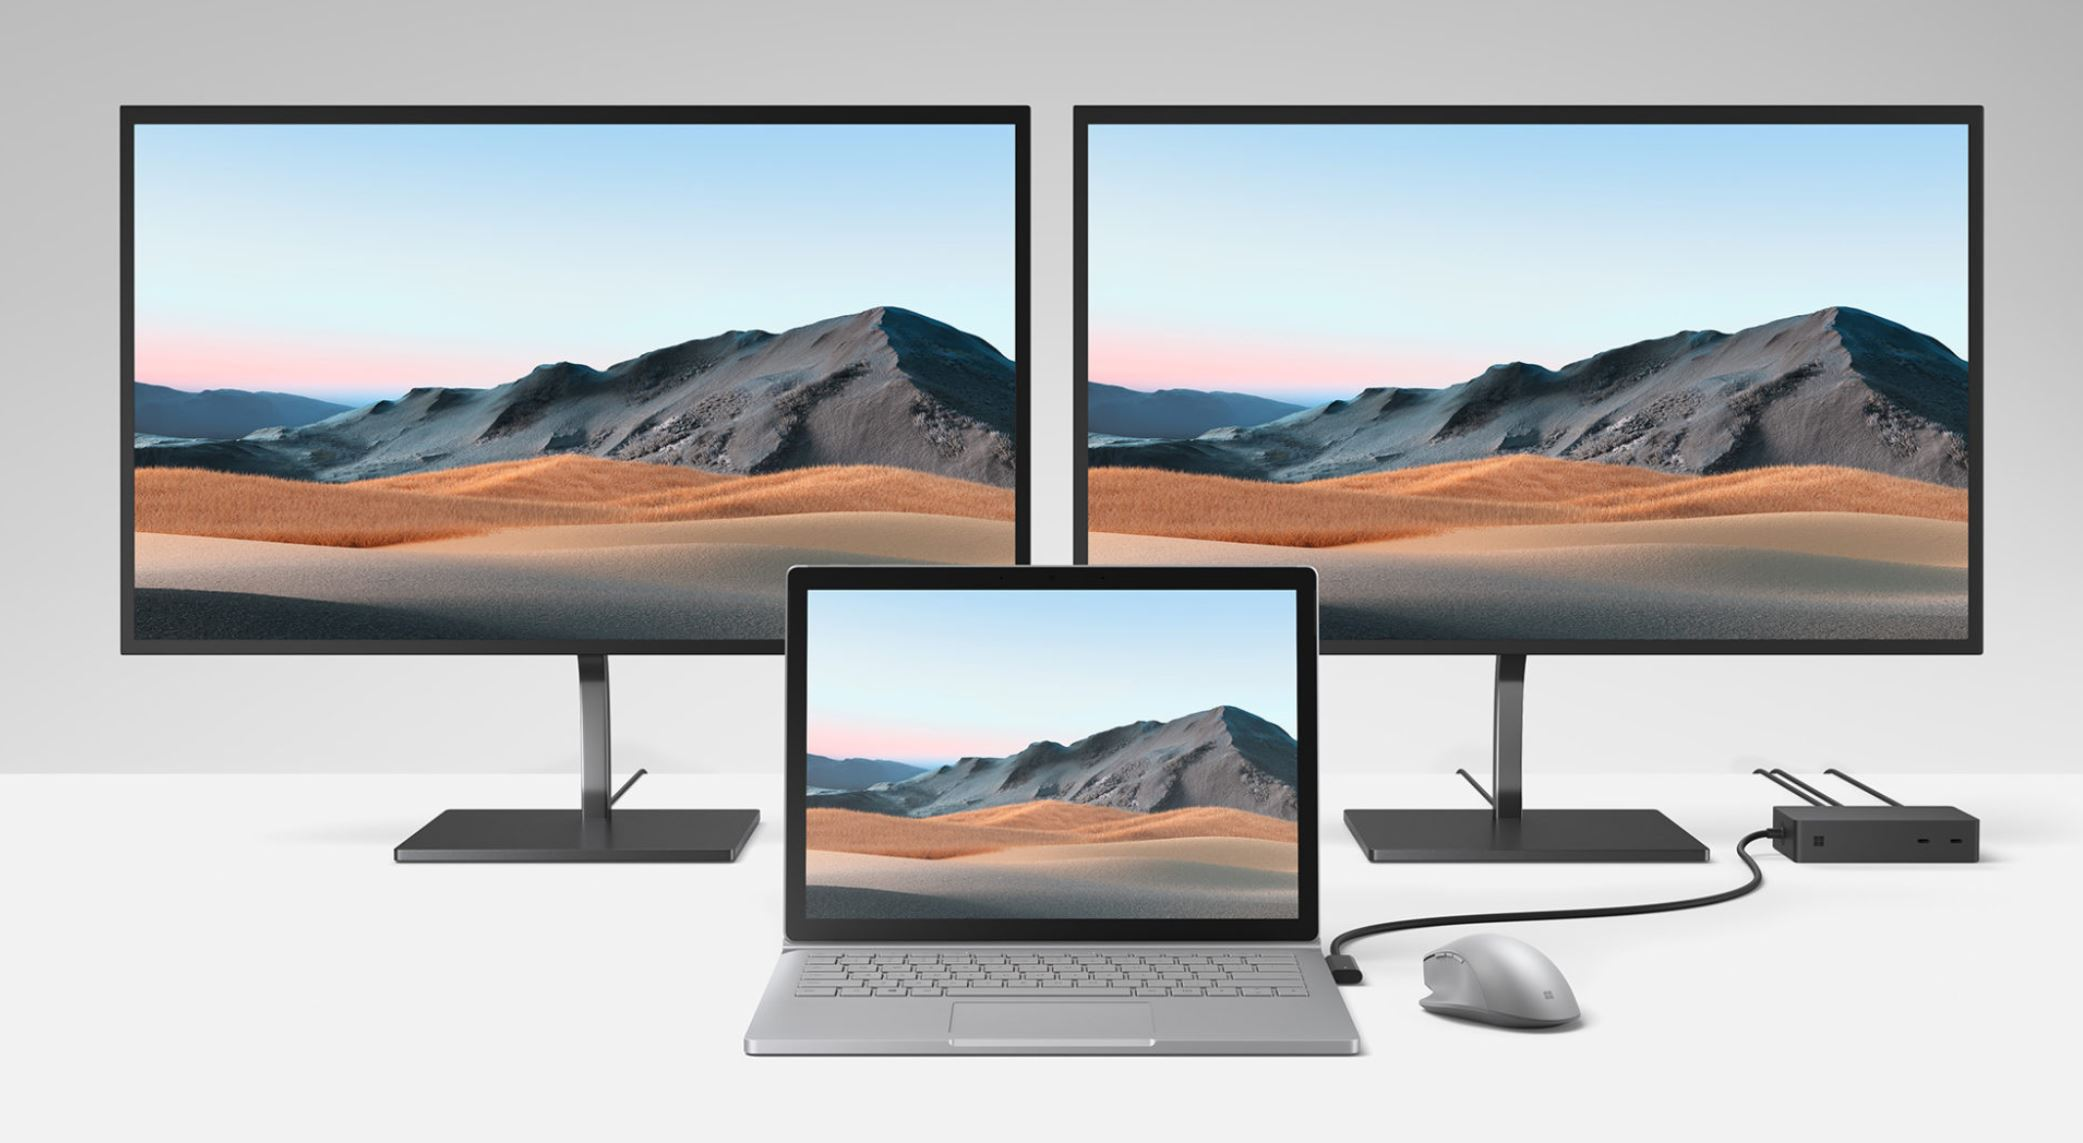 Microsoft announces Surface Dock 2 with four USB-C ports, faster ...